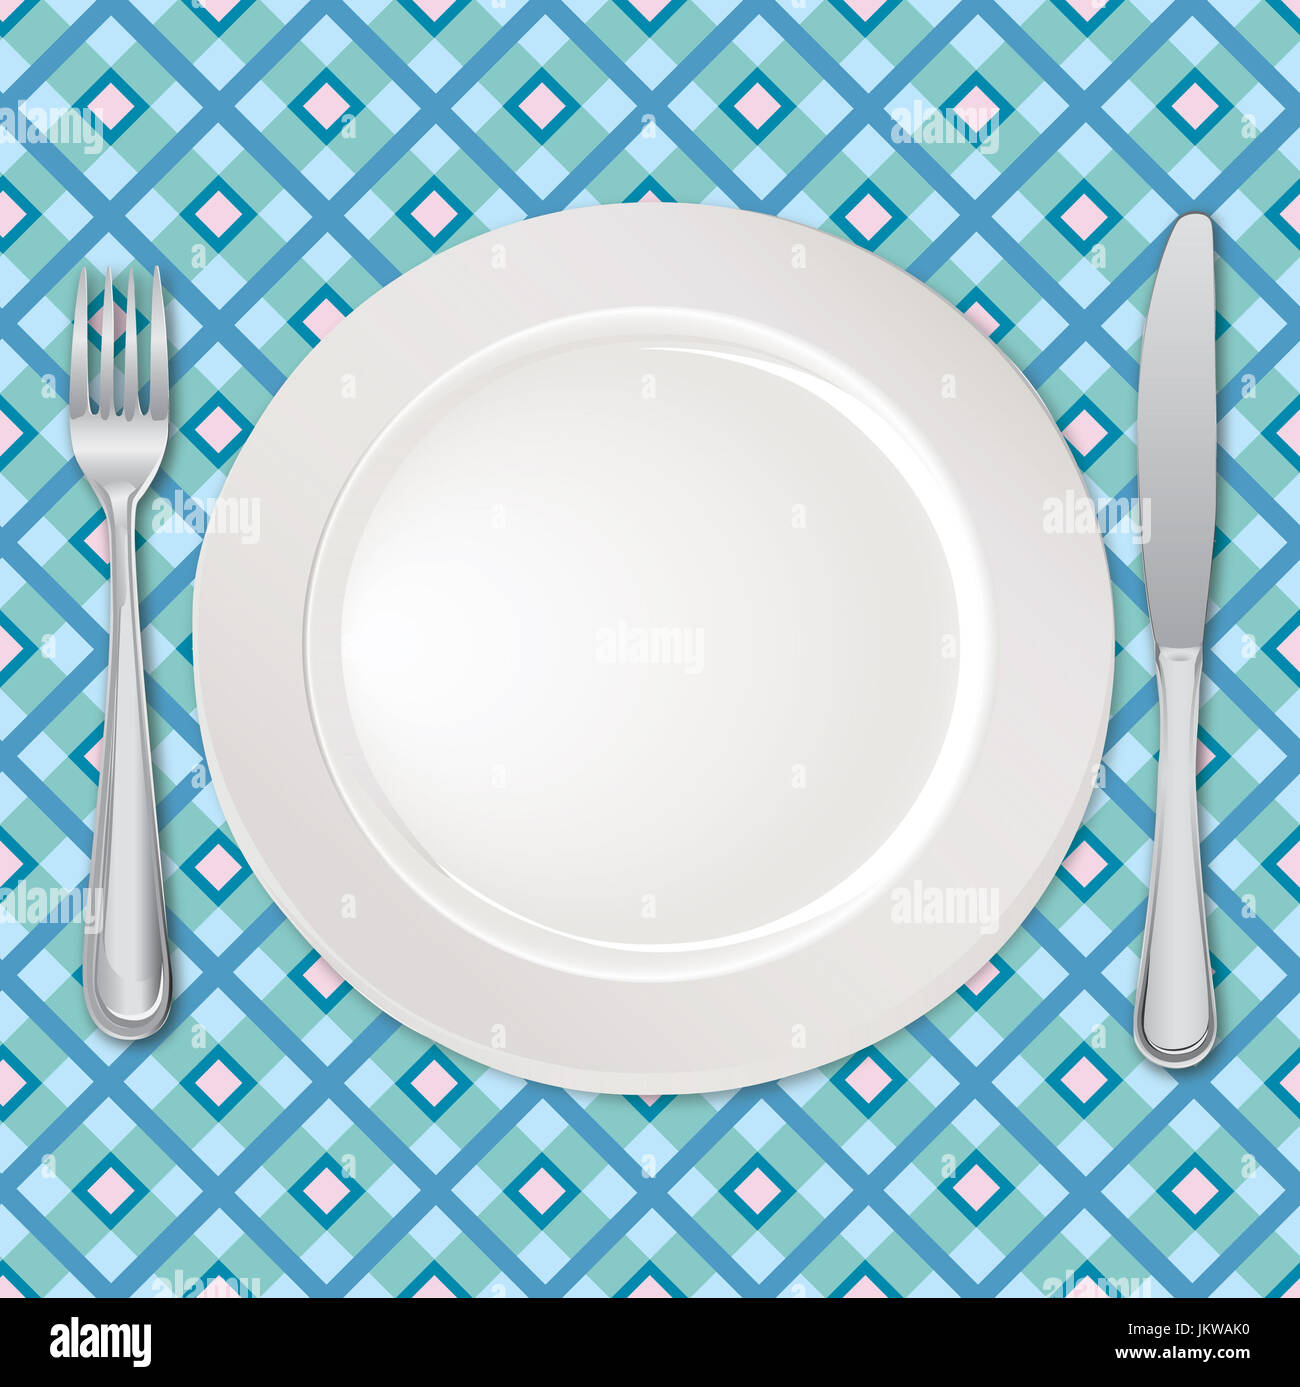 Table setting set. Fork Knife Spoon Empty Plate set. Cutlery white collection. Catering vector illustration. Restaurant service. Banquet still life  sc 1 st  Alamy & Table setting set. Fork Knife Spoon Empty Plate set. Cutlery ...